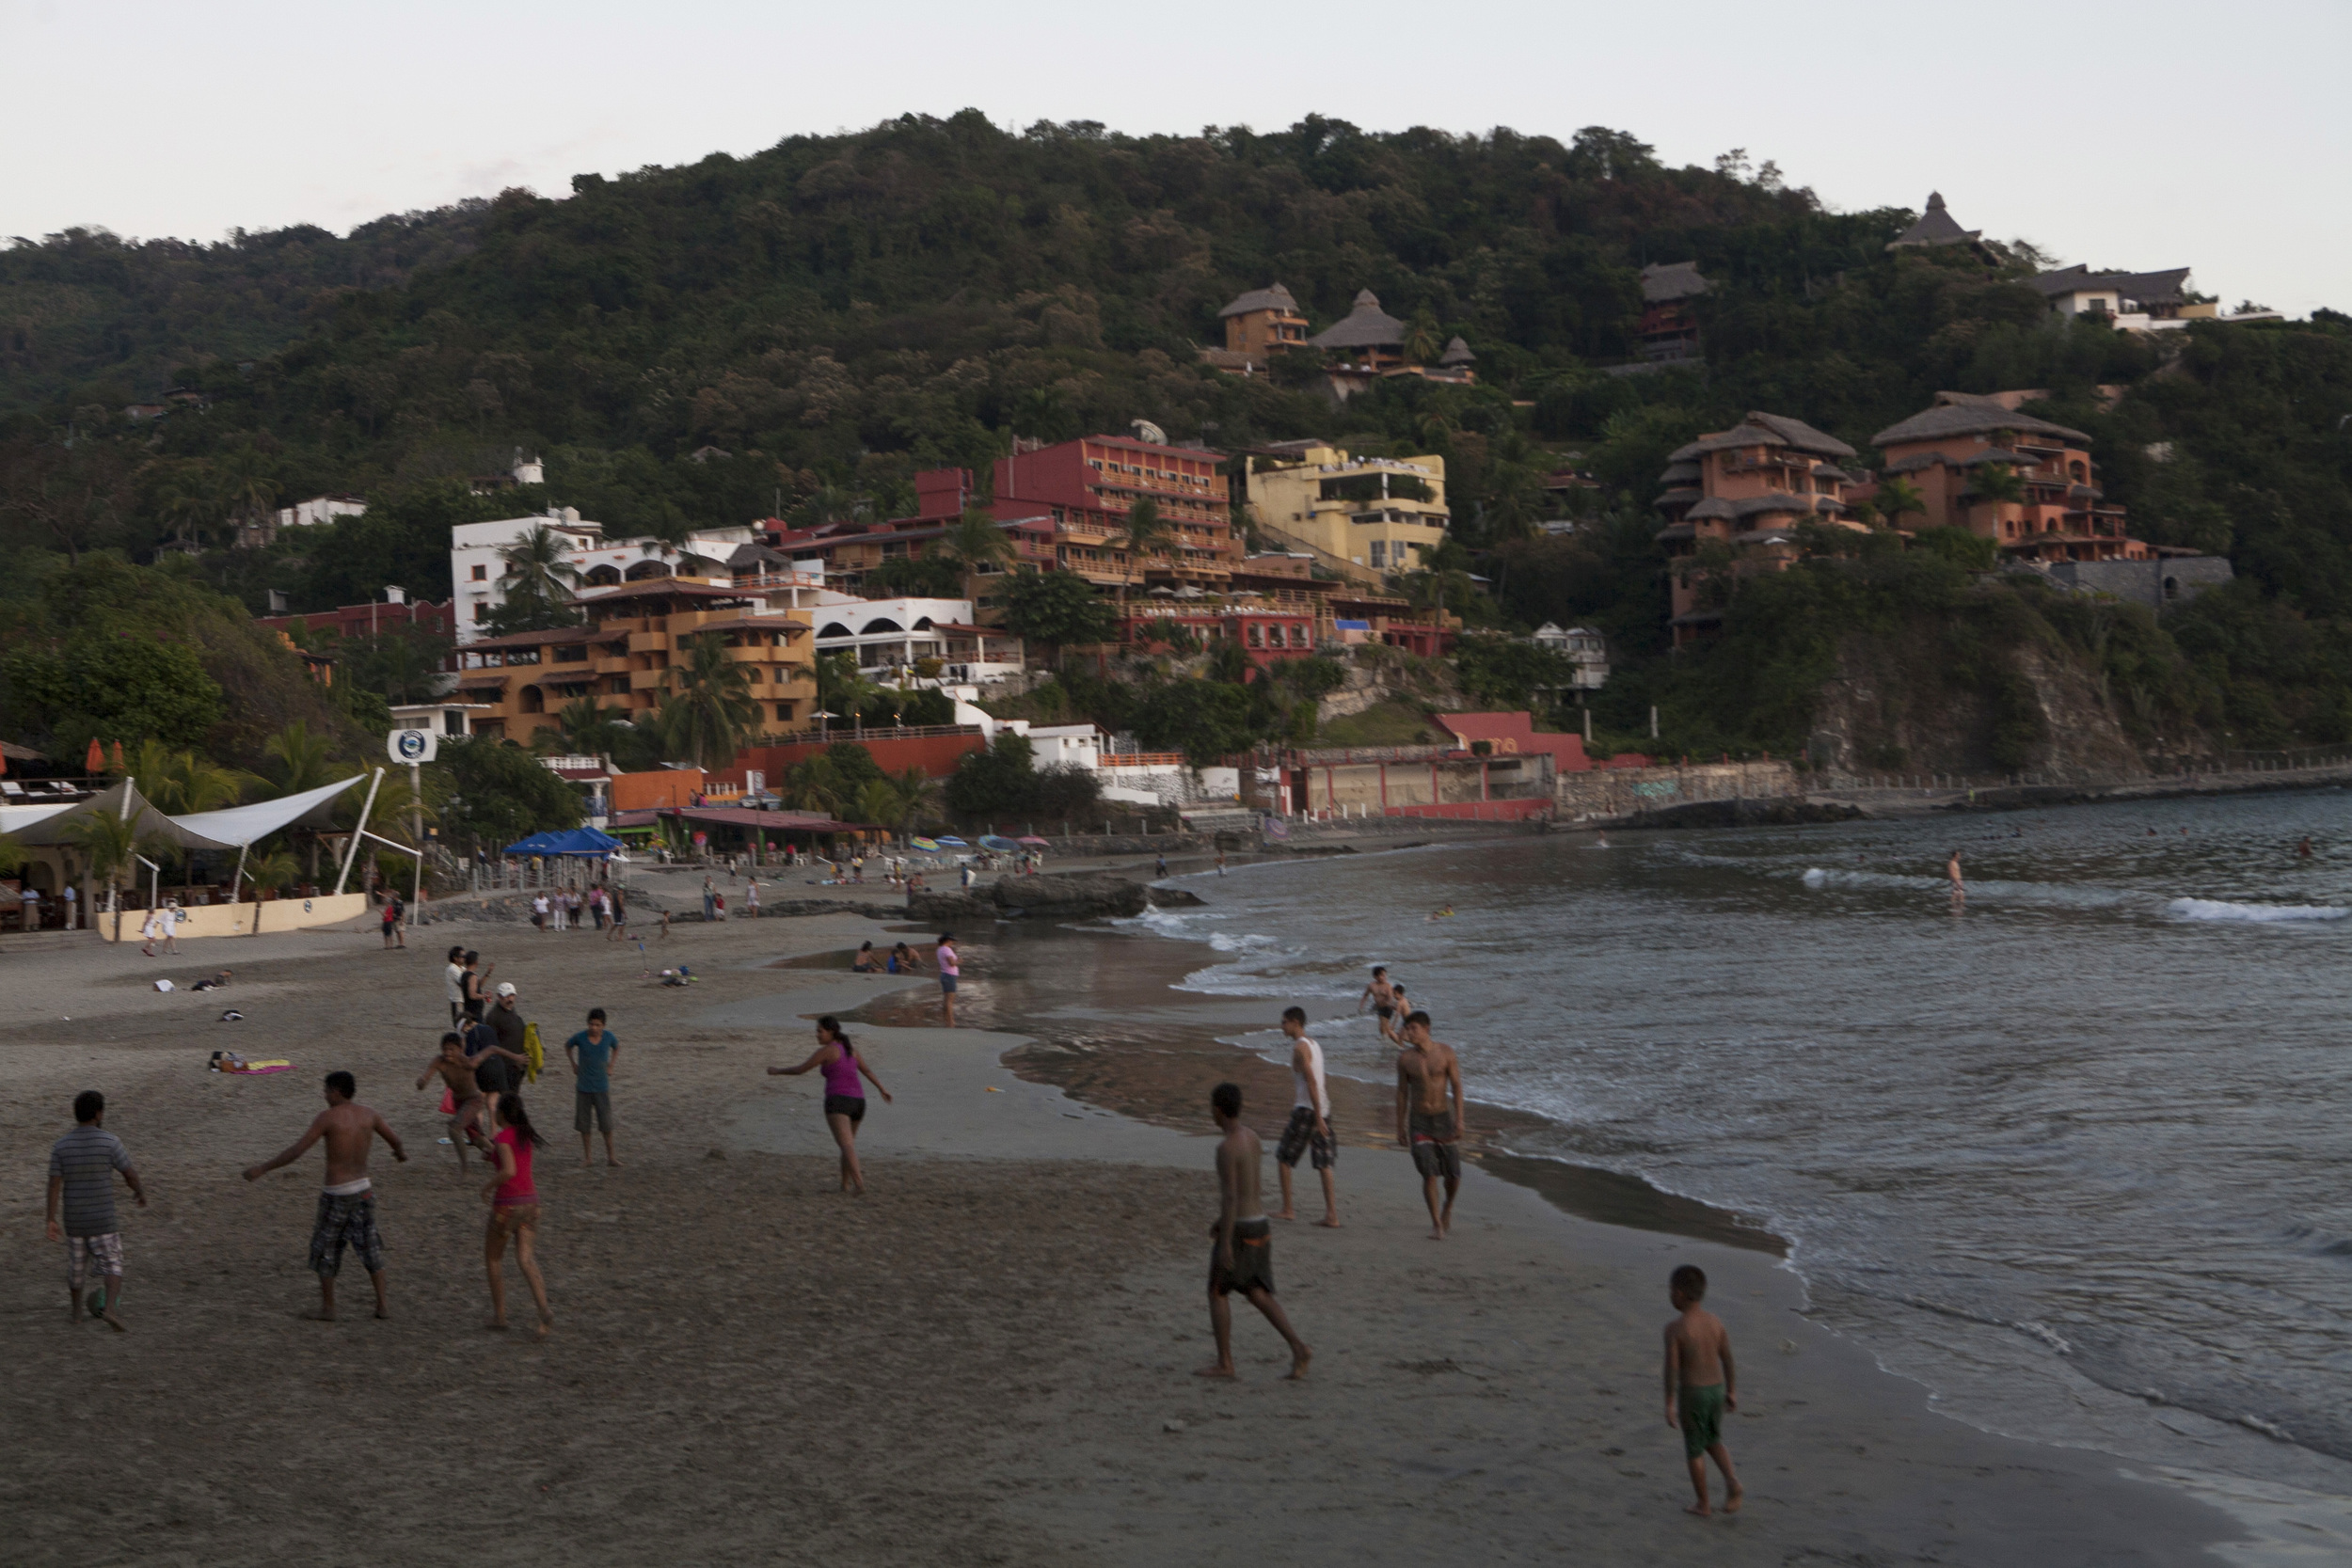 The locals enjoy an evening at Playa La Madera, (Wood Beach), a half mile stretch of sand where humble family eateries, restaurants, bungalows and hotels dot the cement and sand walkway. ©Gail Fisher